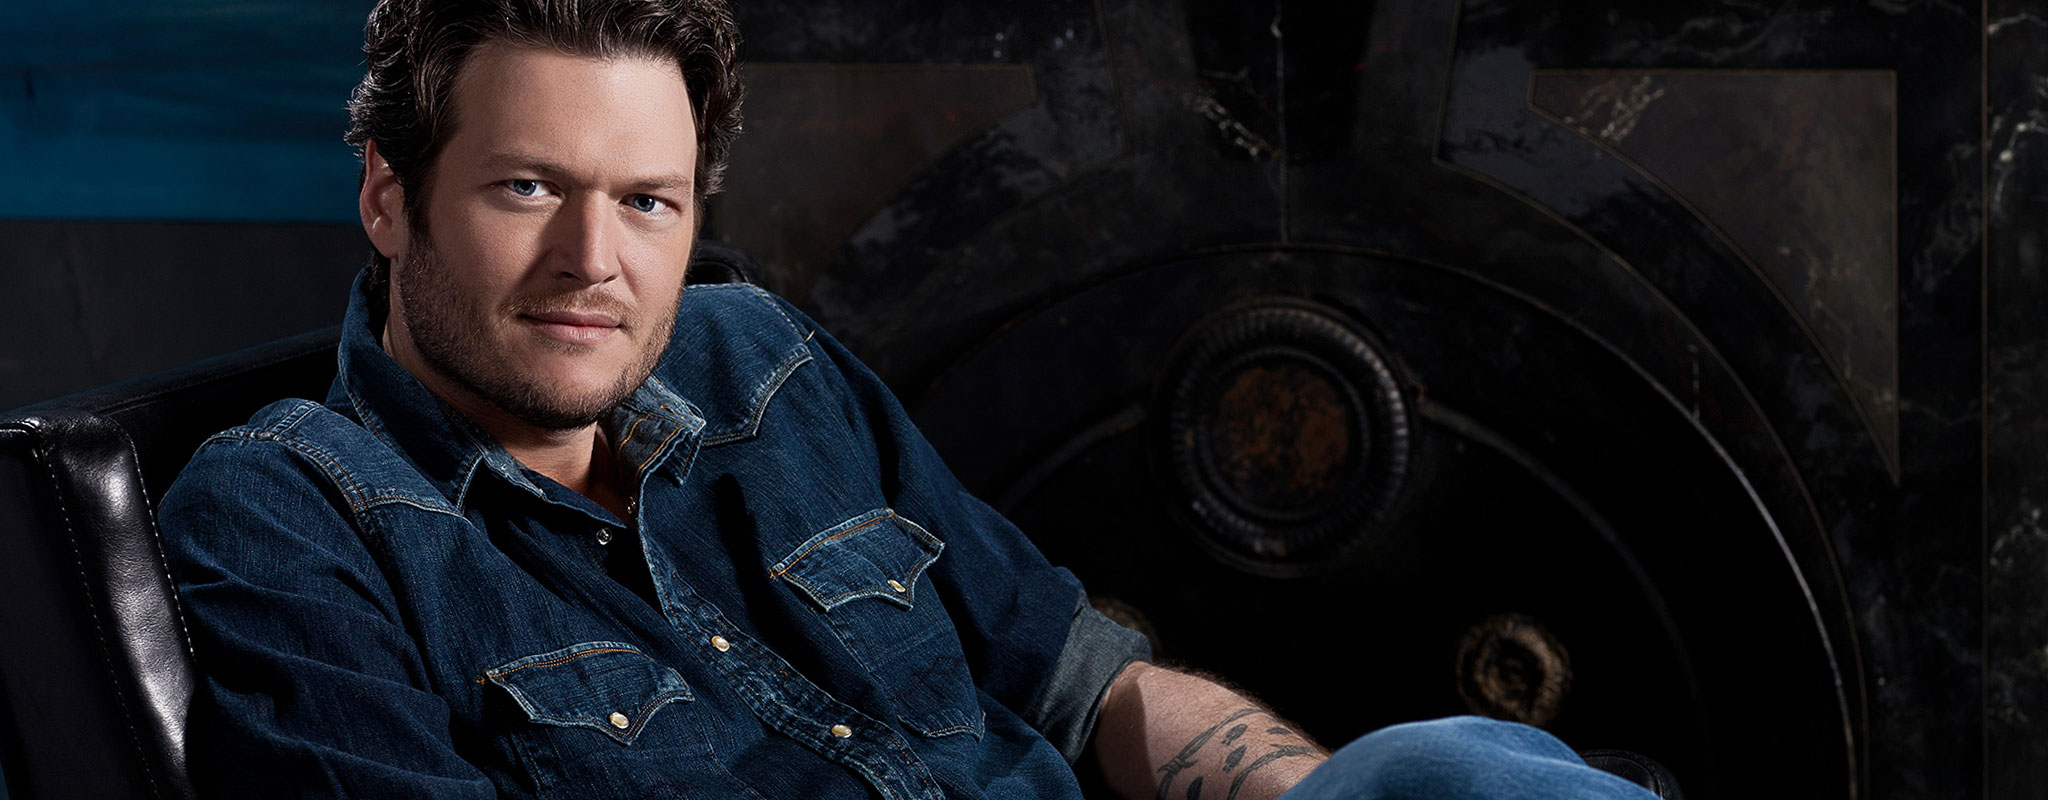 From his team members on The Voice to veteran country artists Blake Shelton has a history of demonstrating his support for the people in whom he believes